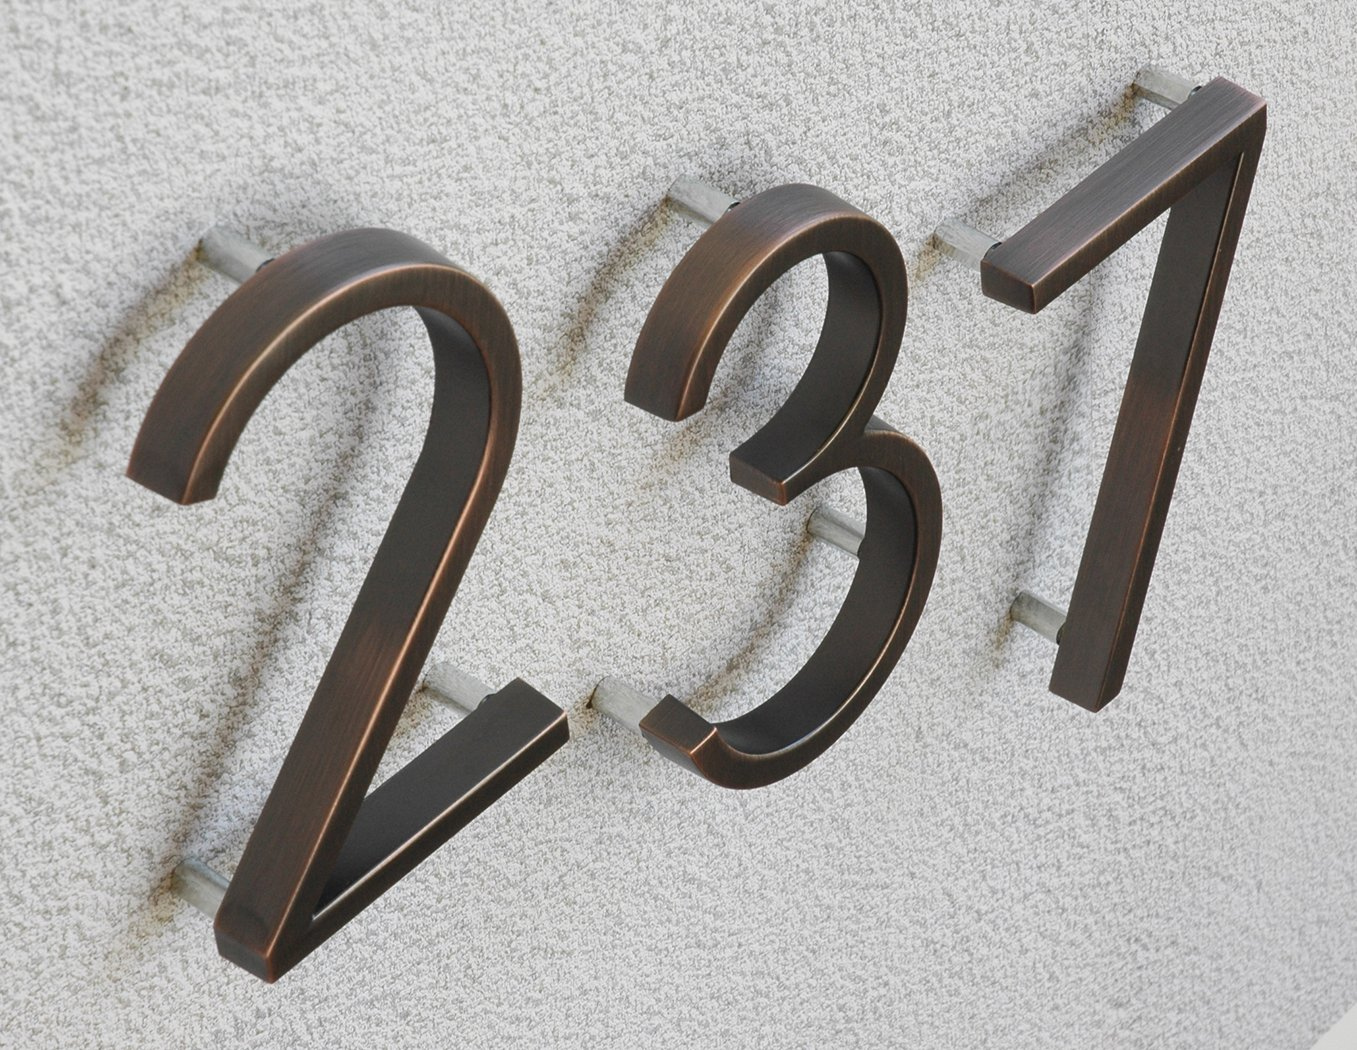 Distinctions by Hillman 843229 5-Inch Die Cast Floating/Flush Mount House Number, Aged Bronze, Number 4 by Distinctions by Hillman (Image #7)